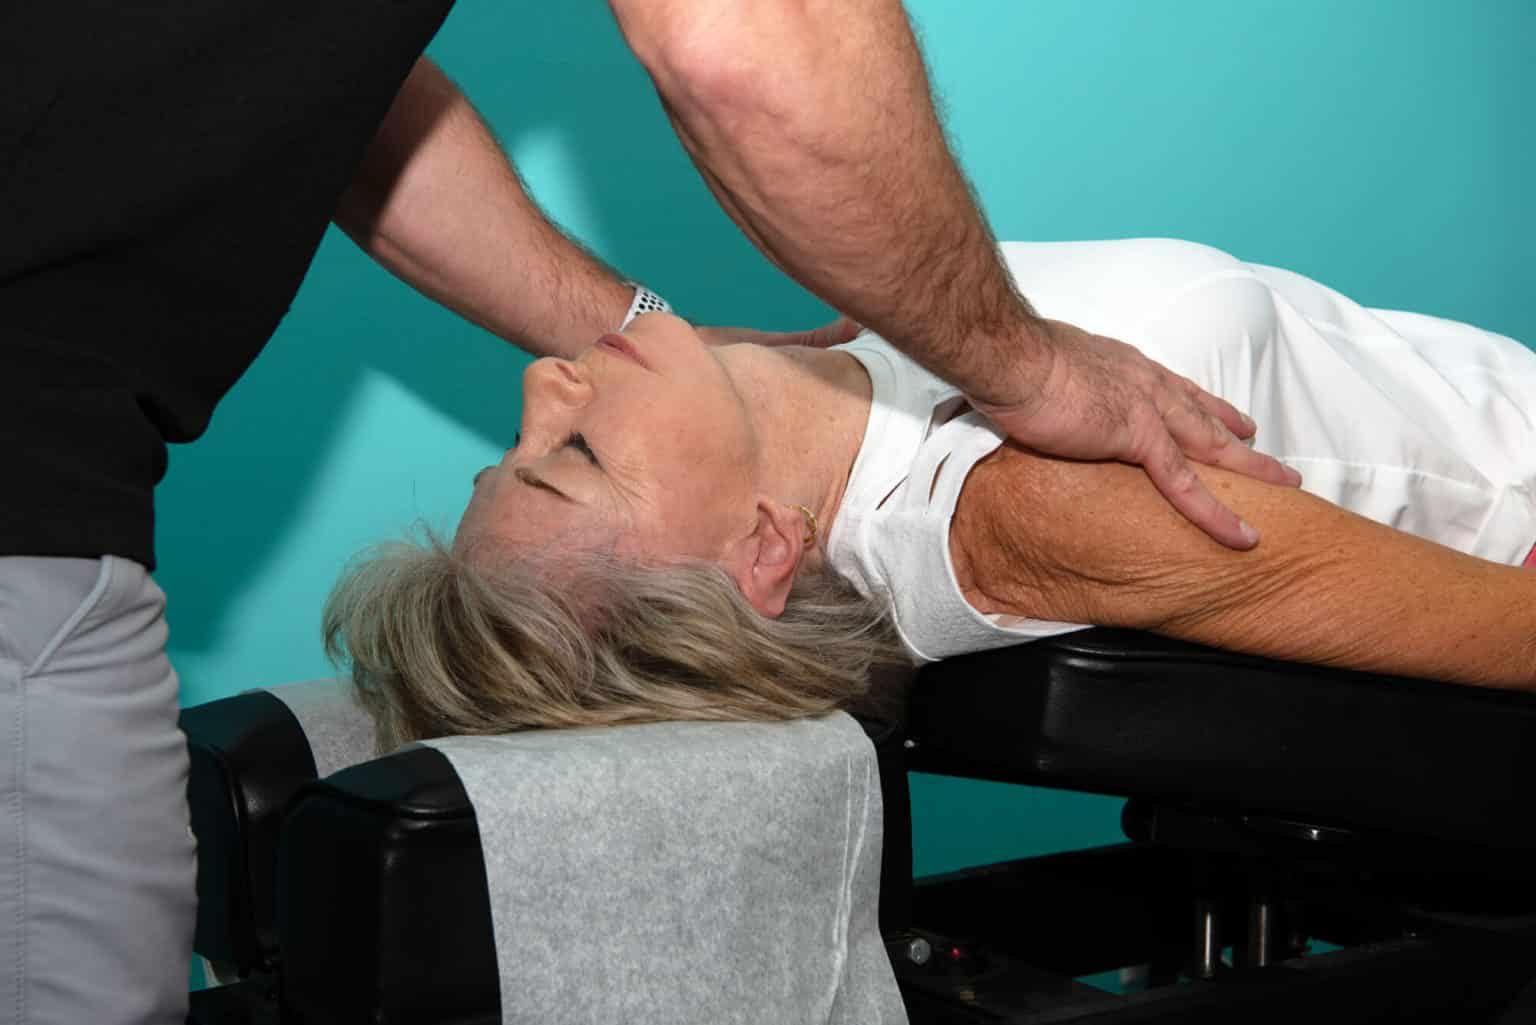 Dr. Neil doing an chiropractic adjustment to a adult patient